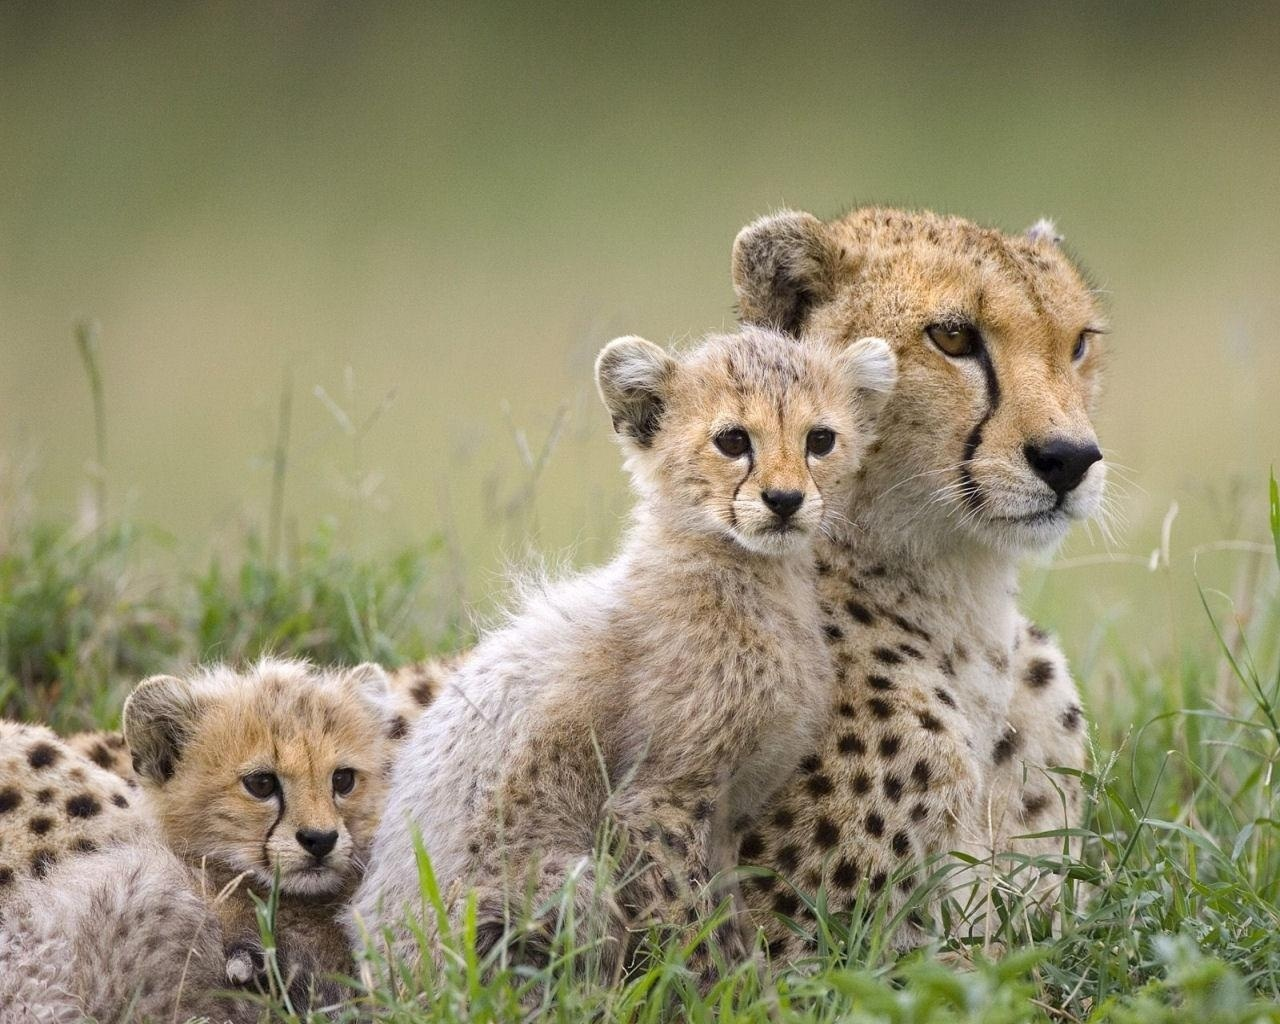 Cheetah Family   Wild Animals Wallpaper 2603080 1280x1024